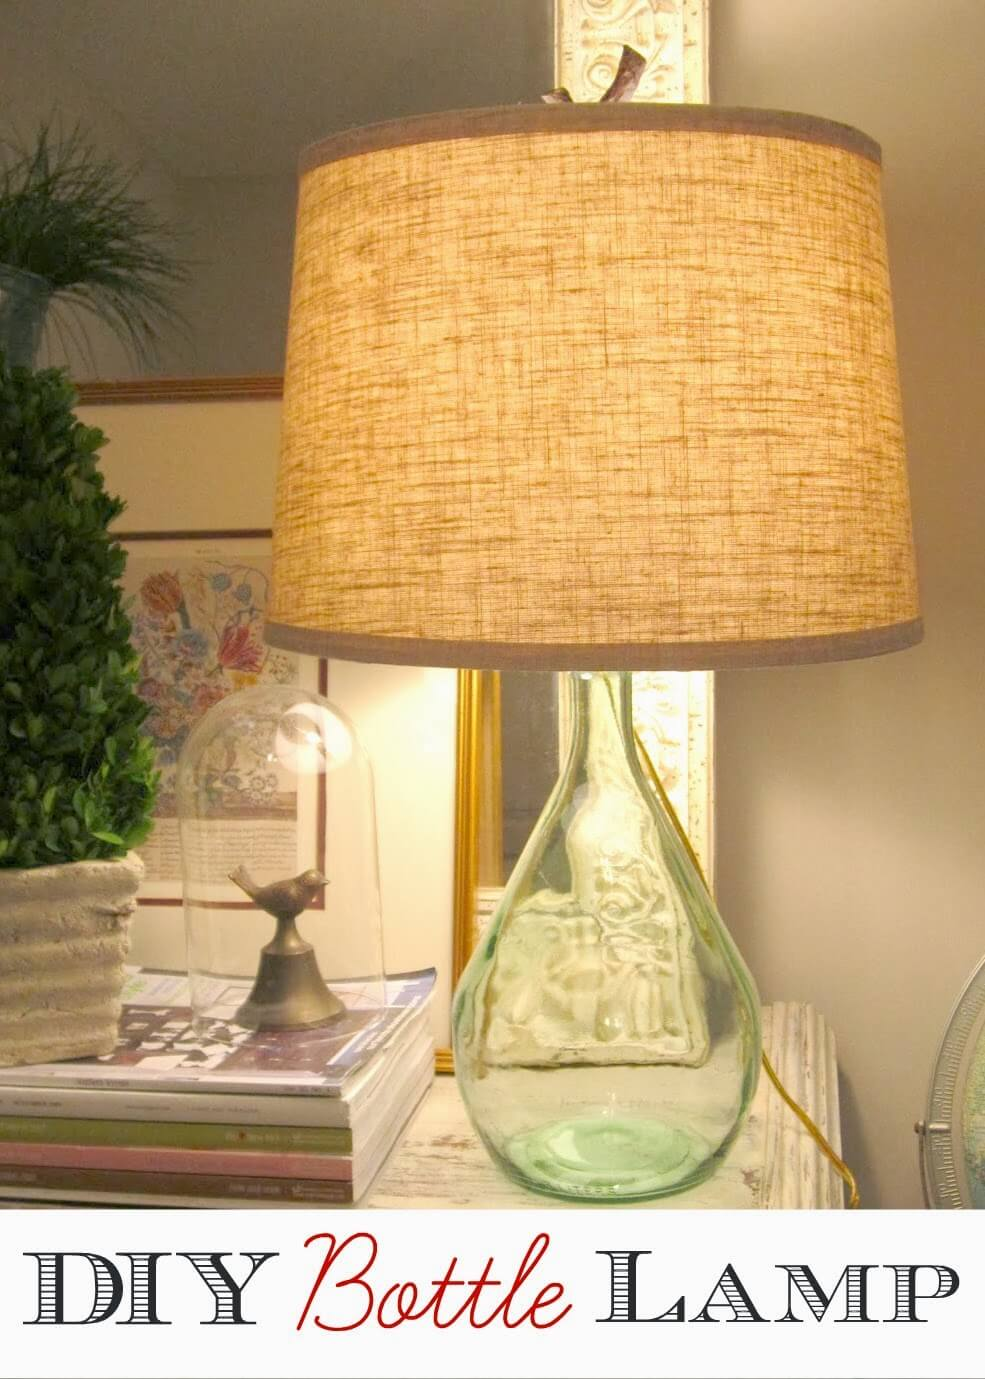 Ship's Bottle Repurposed Lamp